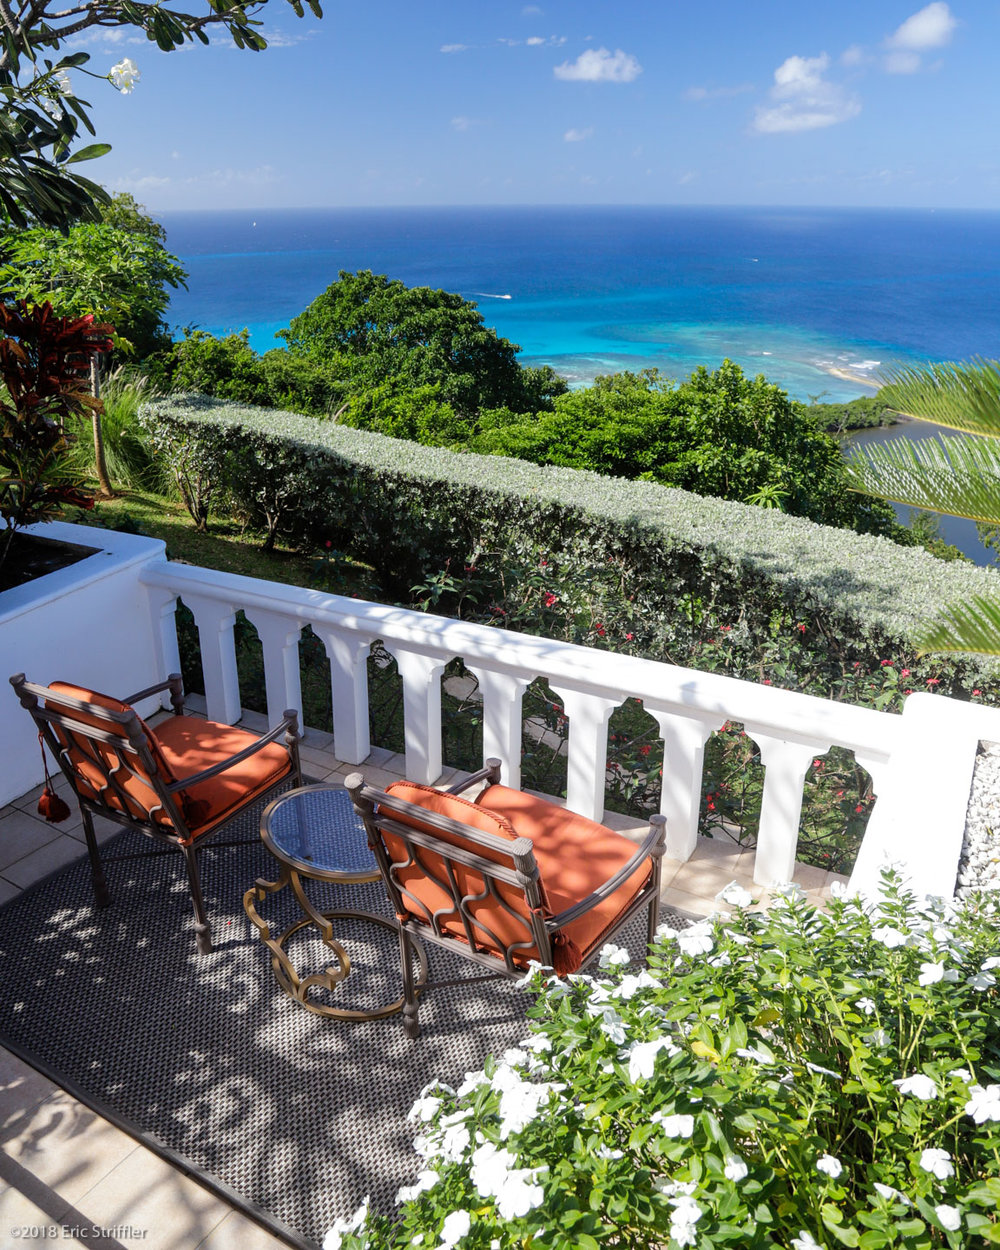 Toucan Hill luxury villa in Mustique (Caribbean)